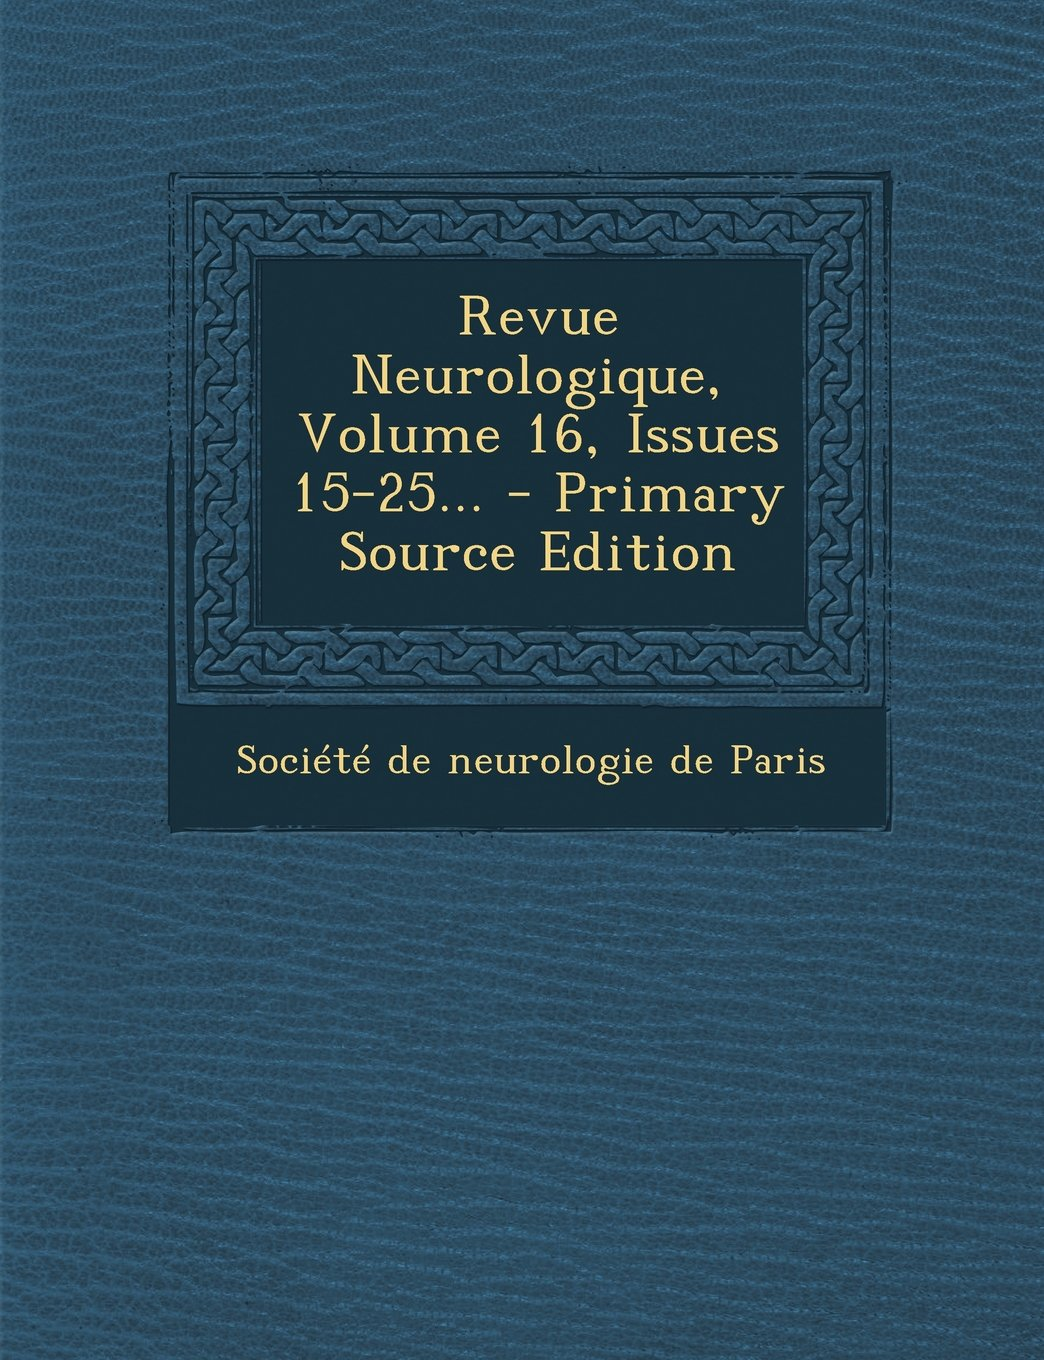 Download Revue Neurologique, Volume 16, Issues 15-25... - Primary Source Edition (French Edition) pdf epub